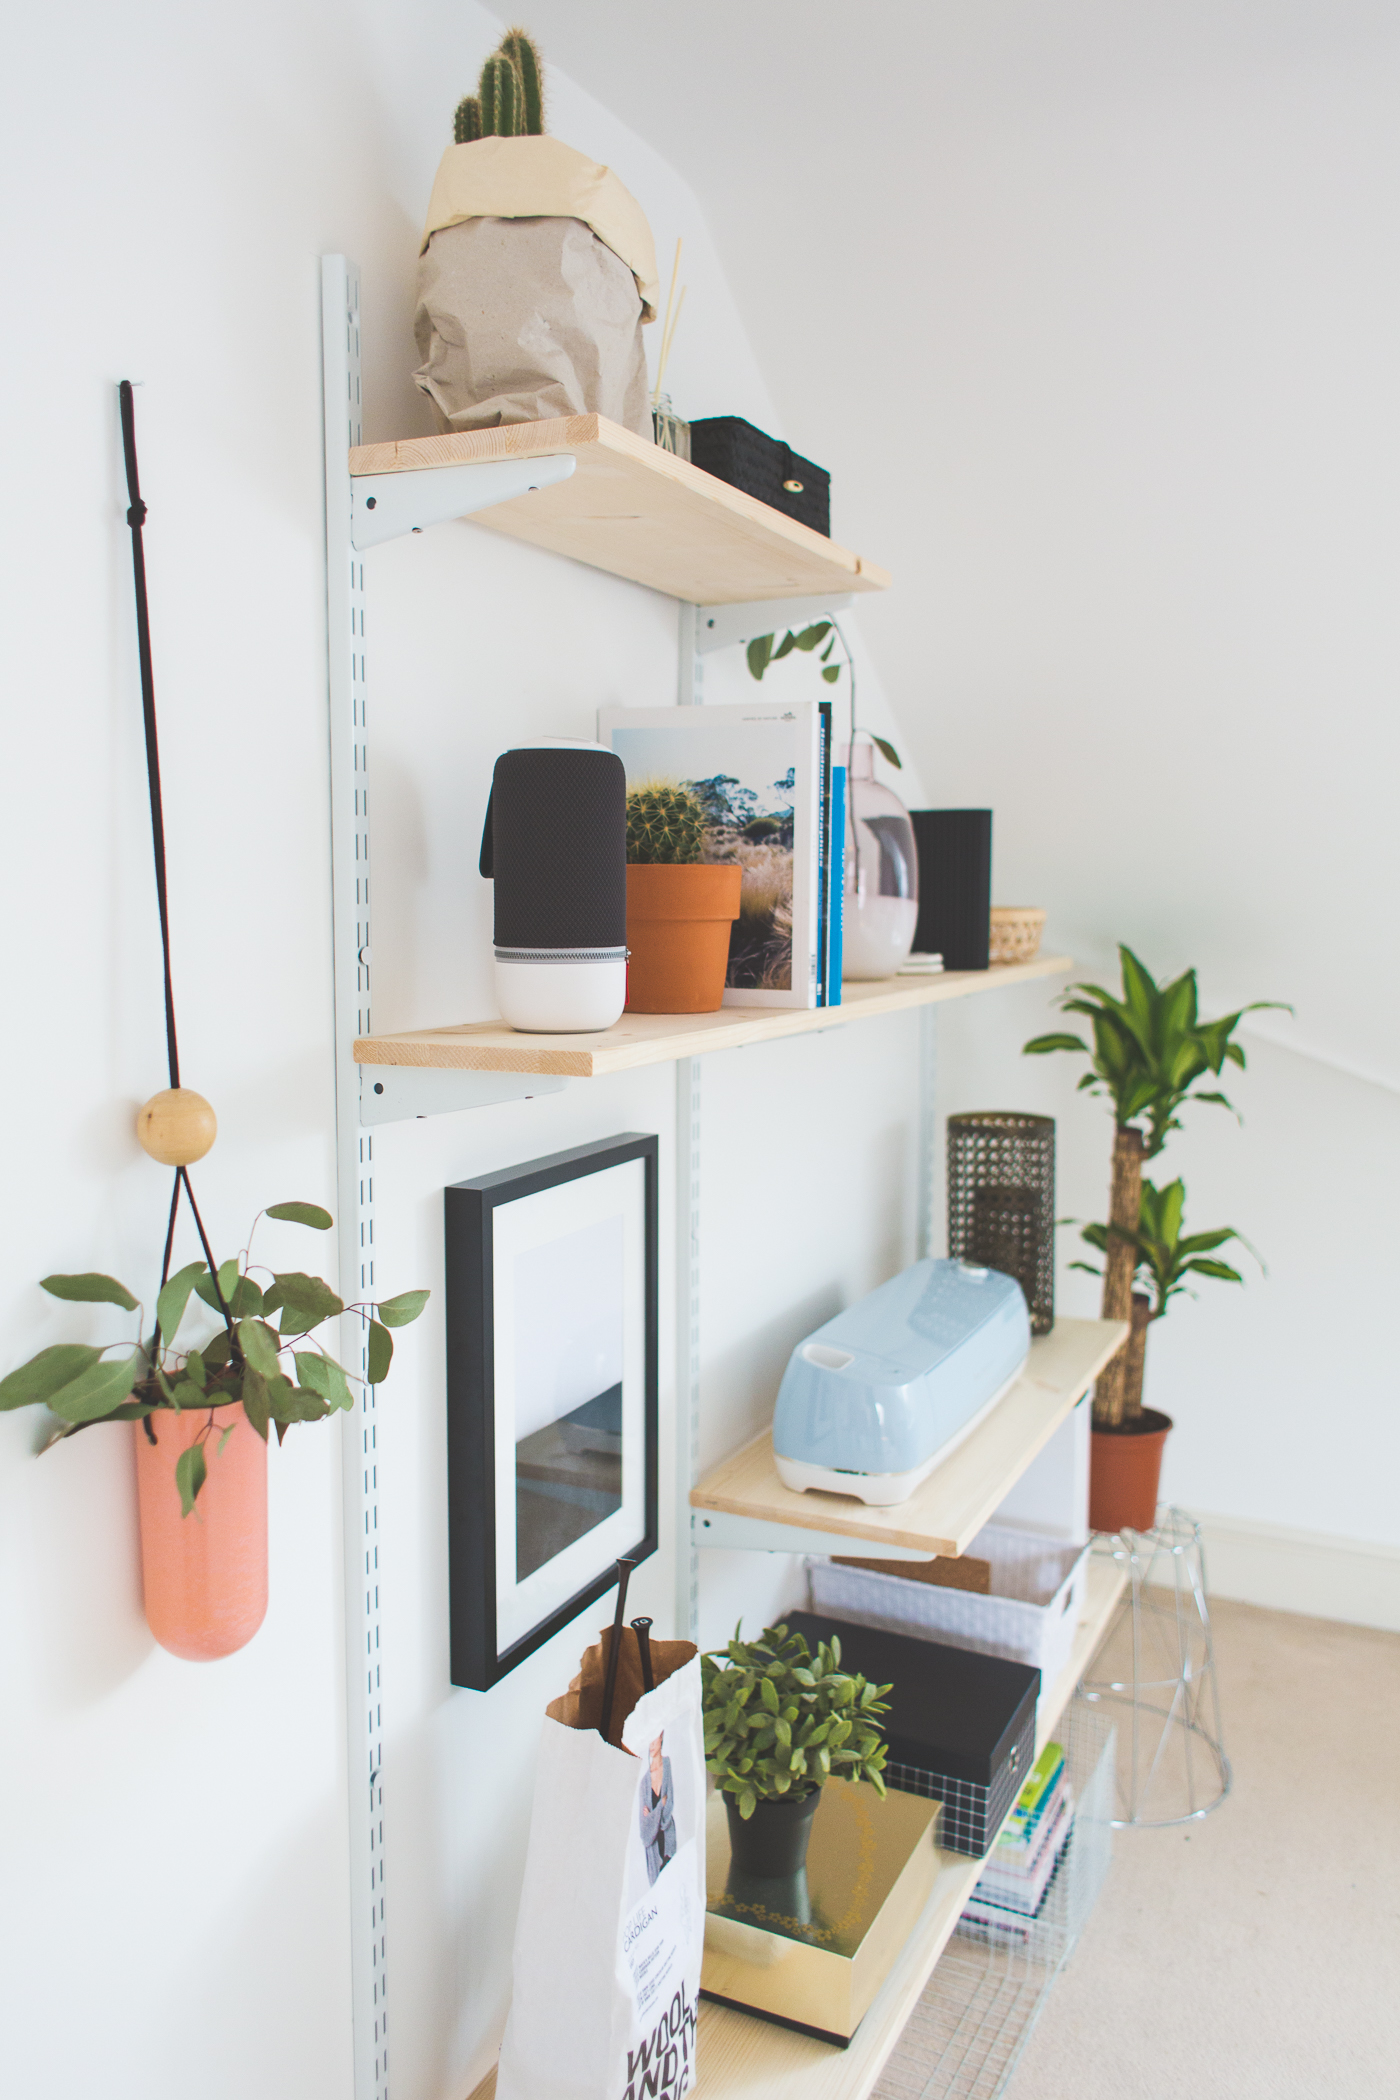 Home and Living Bank Holiday Restoration Challenge | Office Shelfie Makeover @fallfordiy